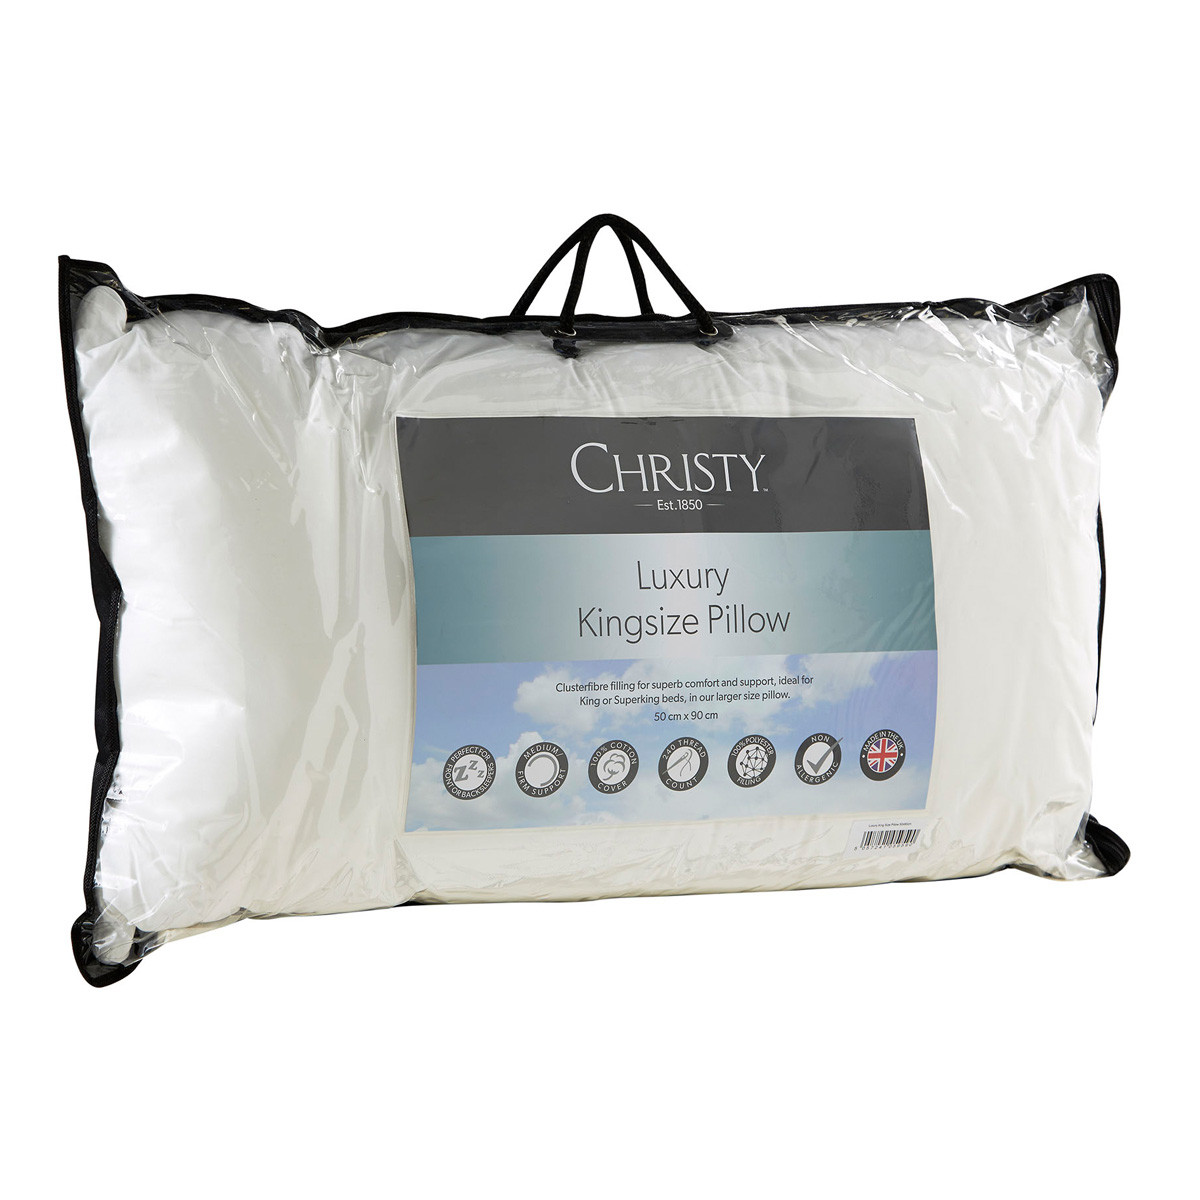 Christy Luxury King Size Pillow